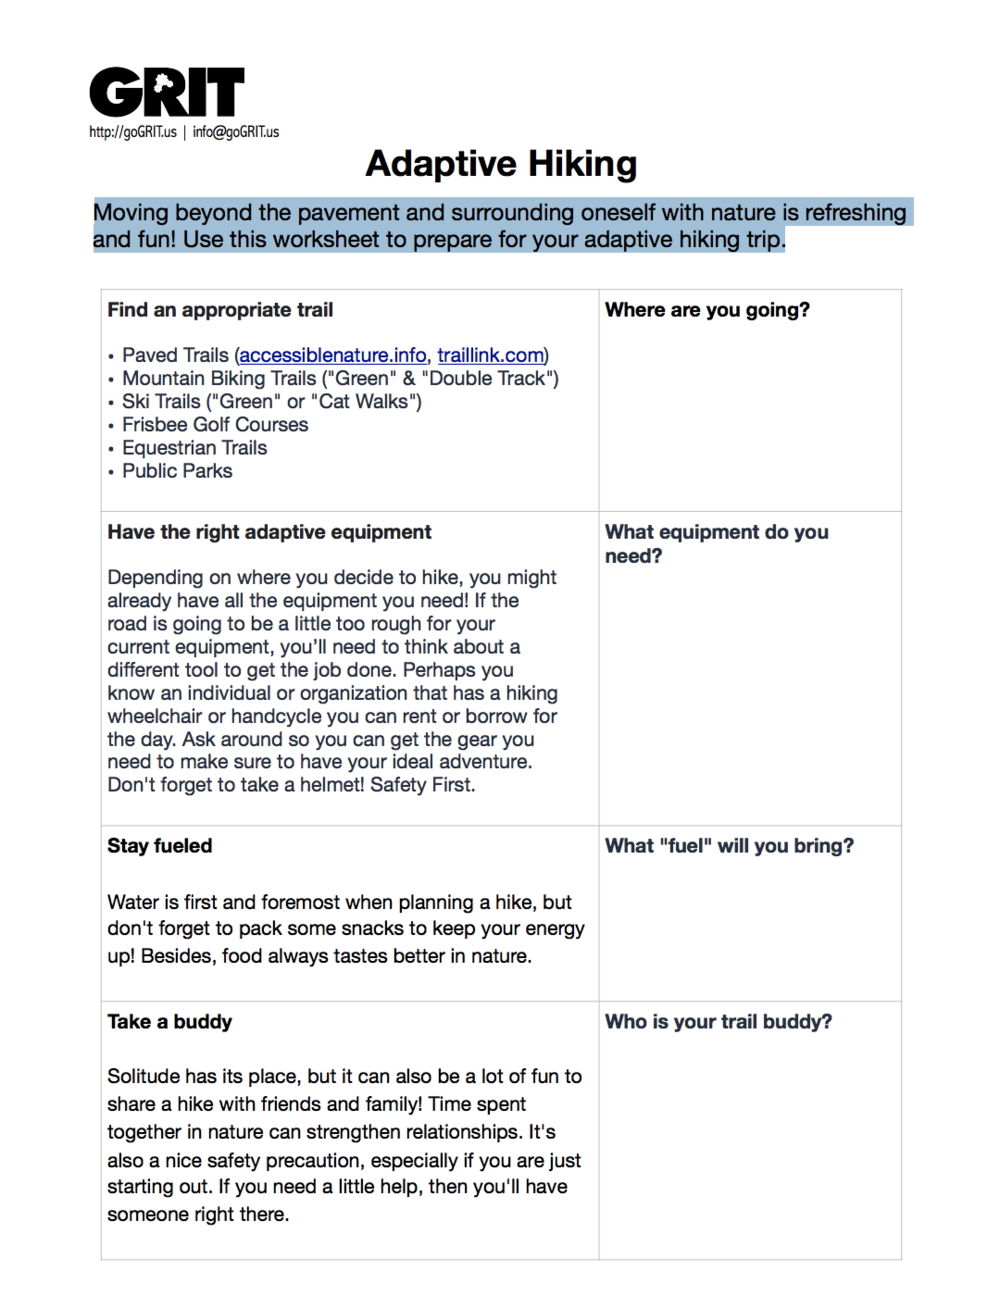 Adaptive Hiking Checklist